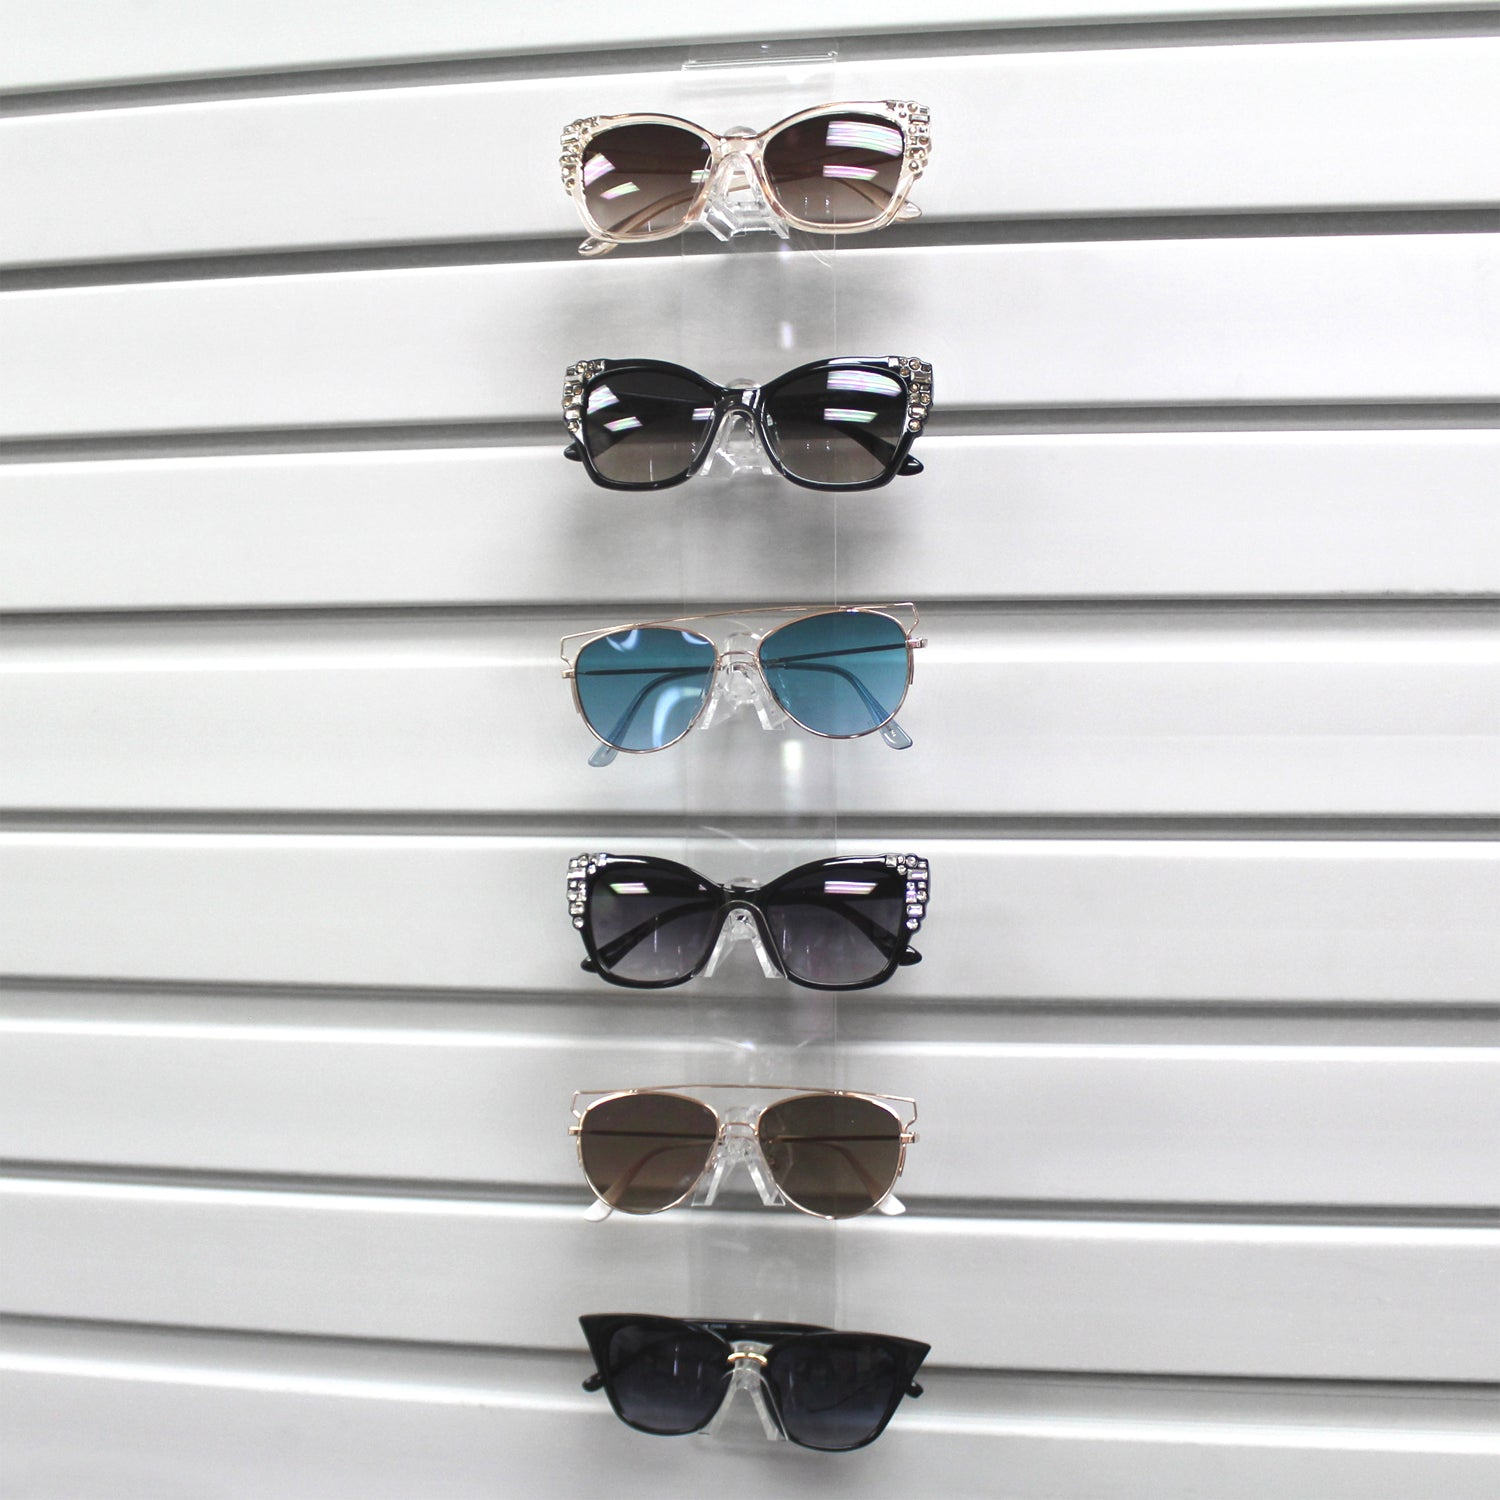 #AC-066 Acrylic Slatwall 6 Eyeglass Frame Display